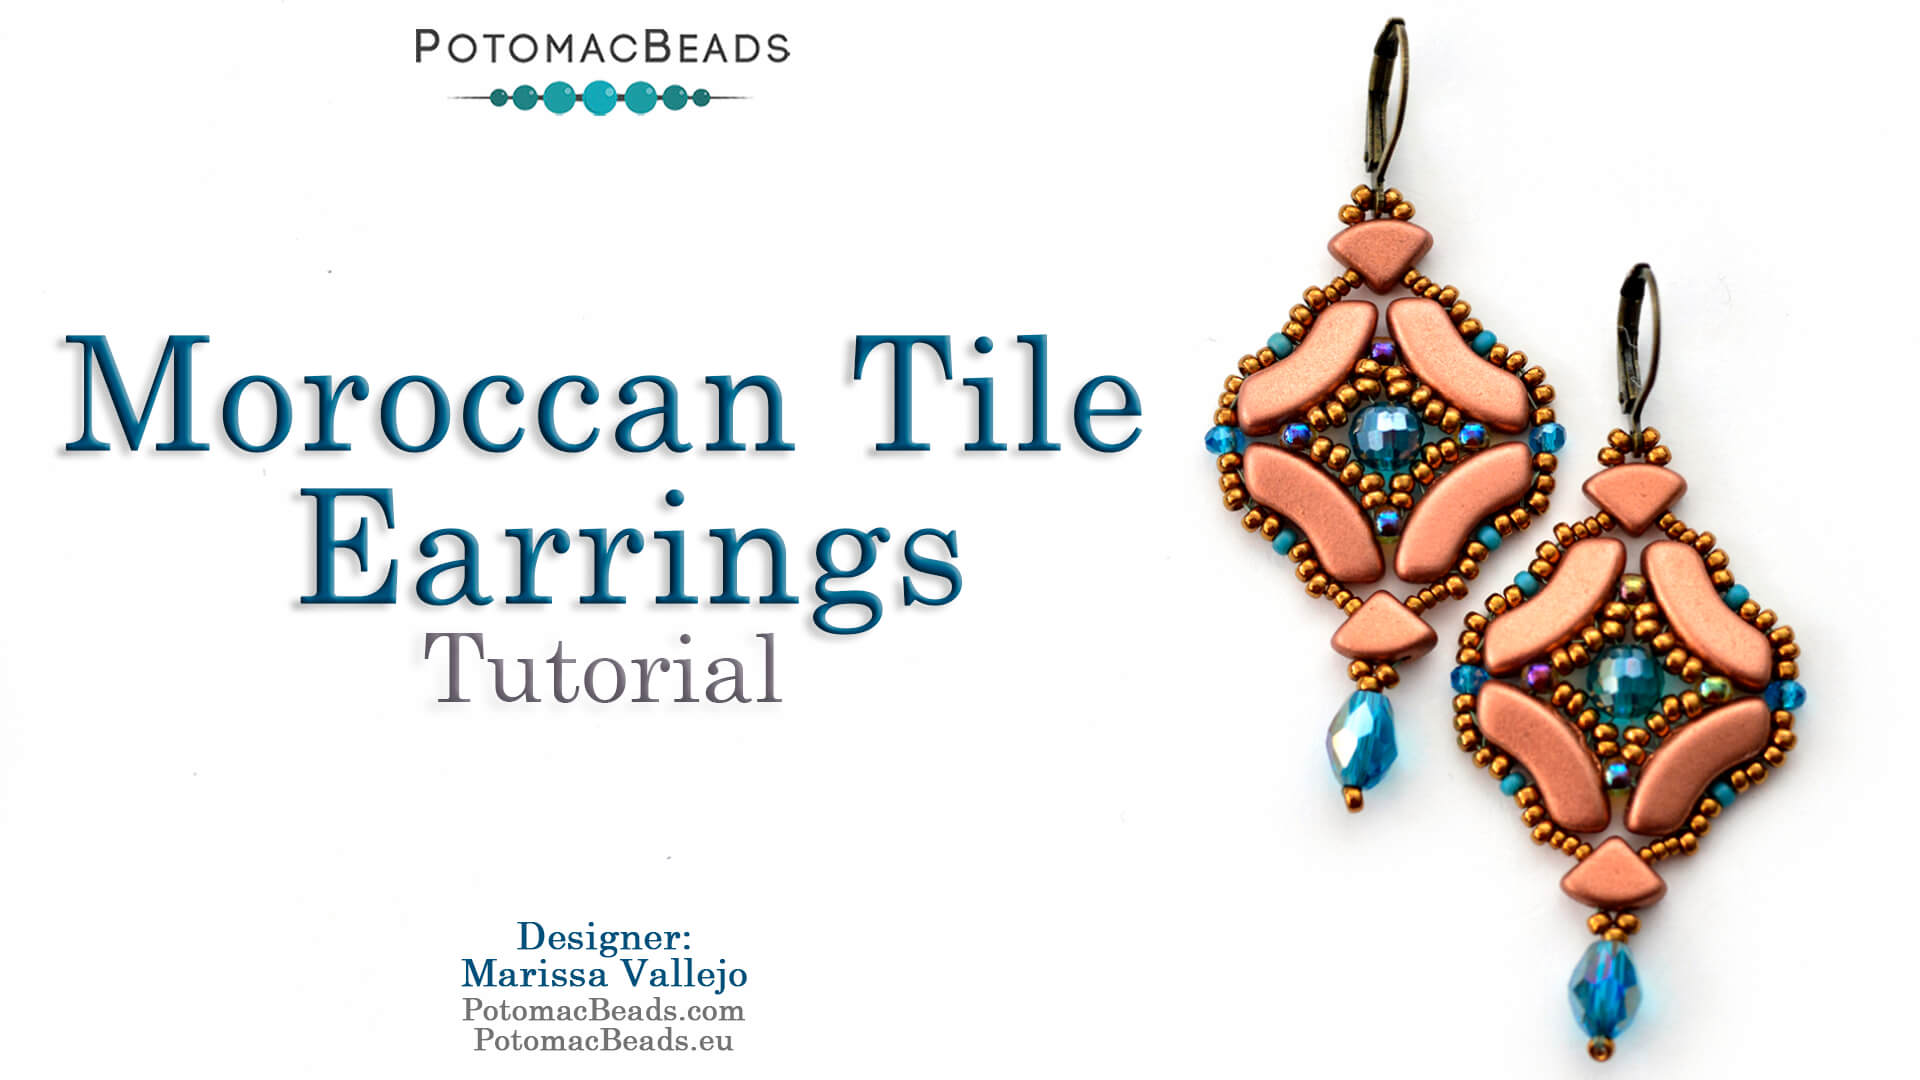 How to Bead / Videos Sorted by Beads / QuadBow & PieDuo Bead Videos / Moroccan Tile Earrings Tutorial